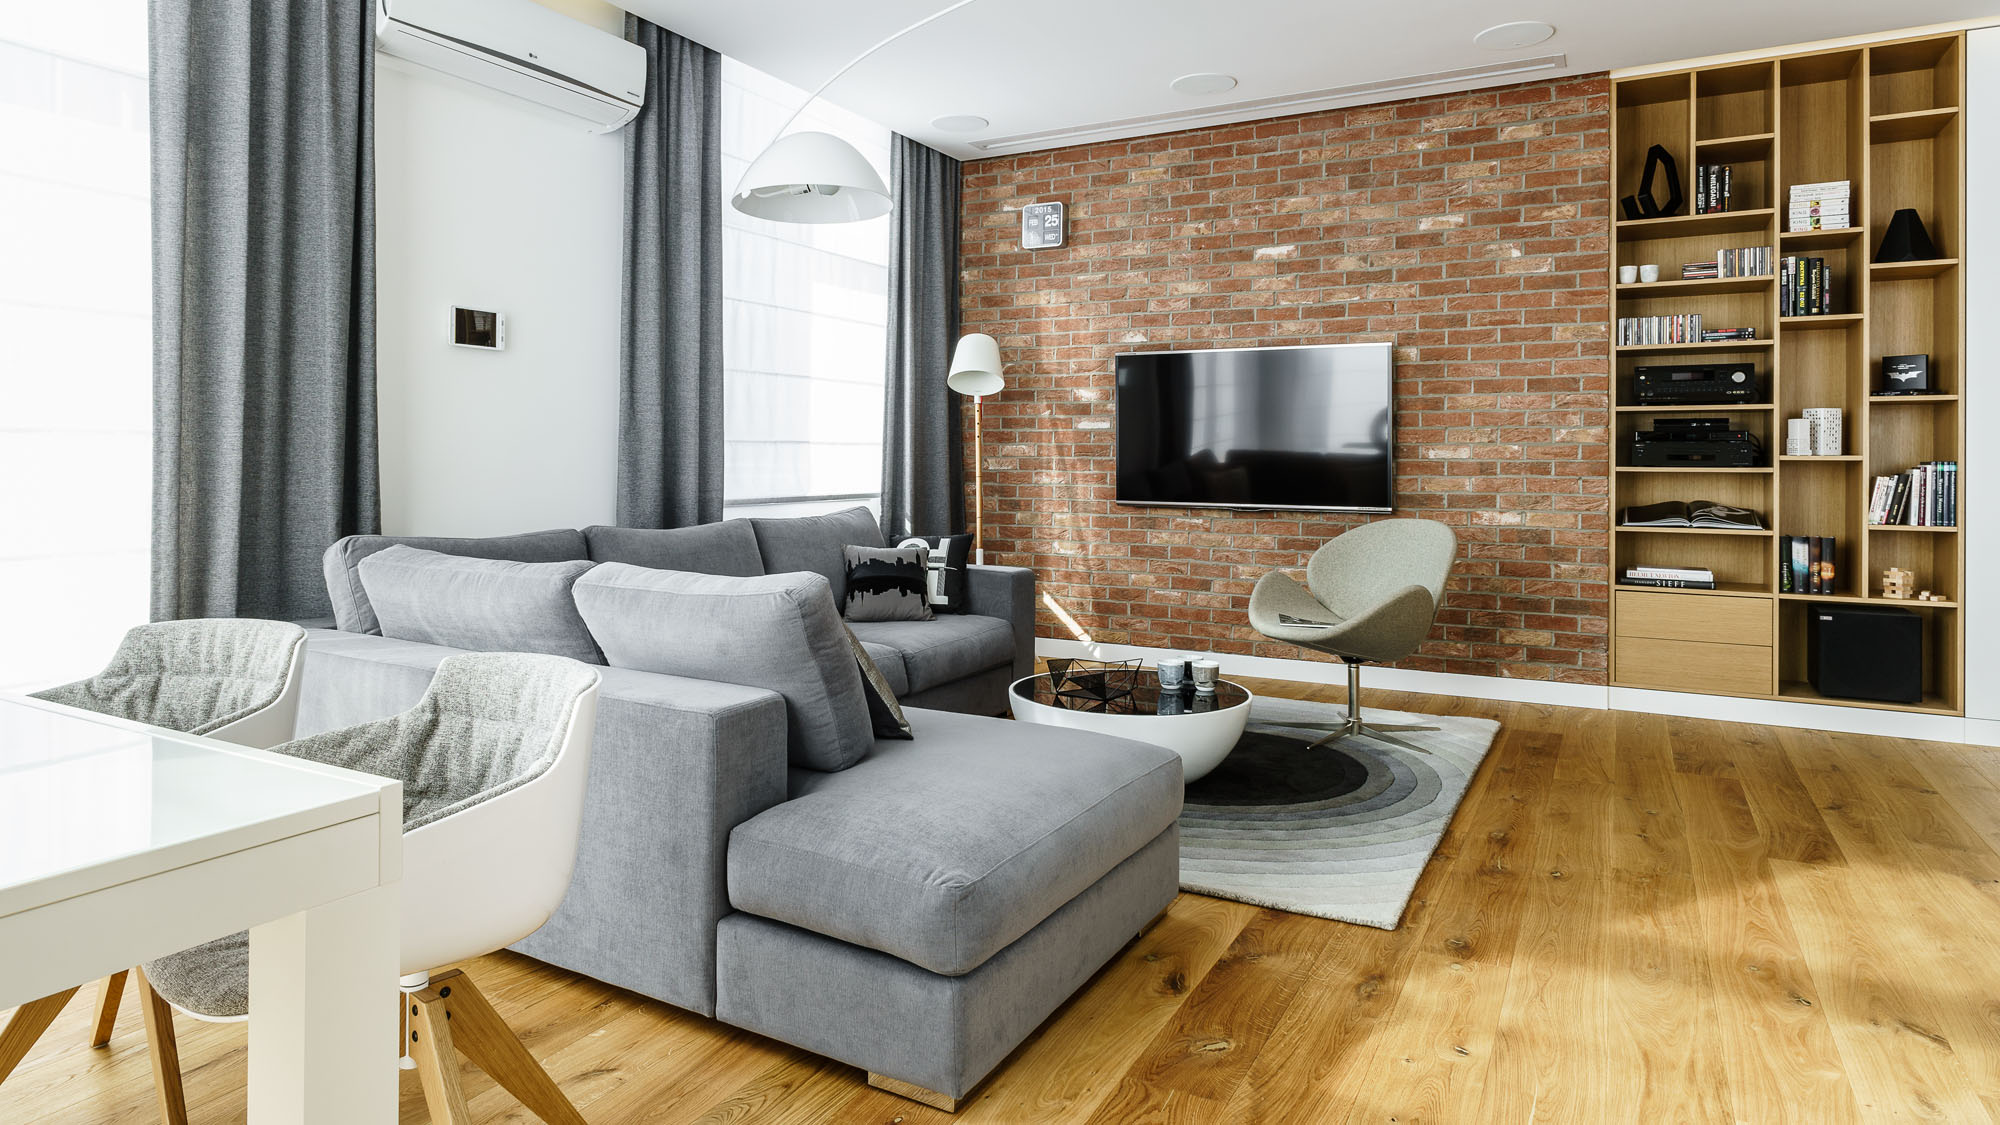 Modern Metallic, Wooden, White Theme Three Bedroom Apartment in Gdynia by Dragon Art-03